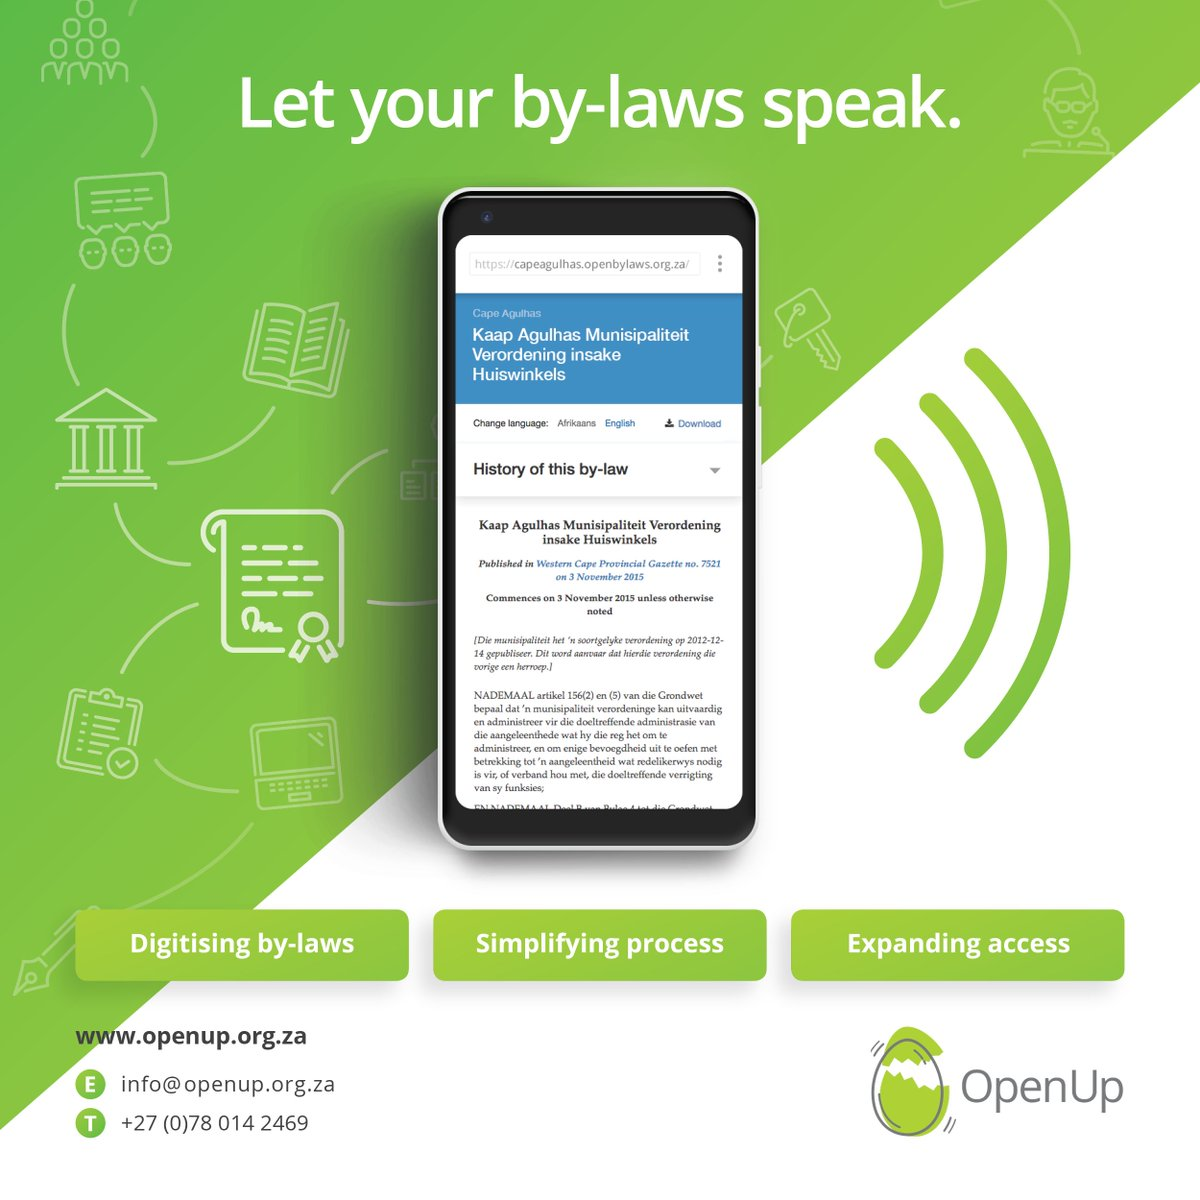 By-laws are crucial for managing local community issues such as liquor sales & refuse removal. On 13 July 2019, @CAPEAGULHASMUNI Youth Council, @OpenUpSA and @laws_africa will be exploring access to, understanding and use of by-laws #CAM  @code_cam @OpenByLawsZA https://t.co/W4EXTPp4Xz